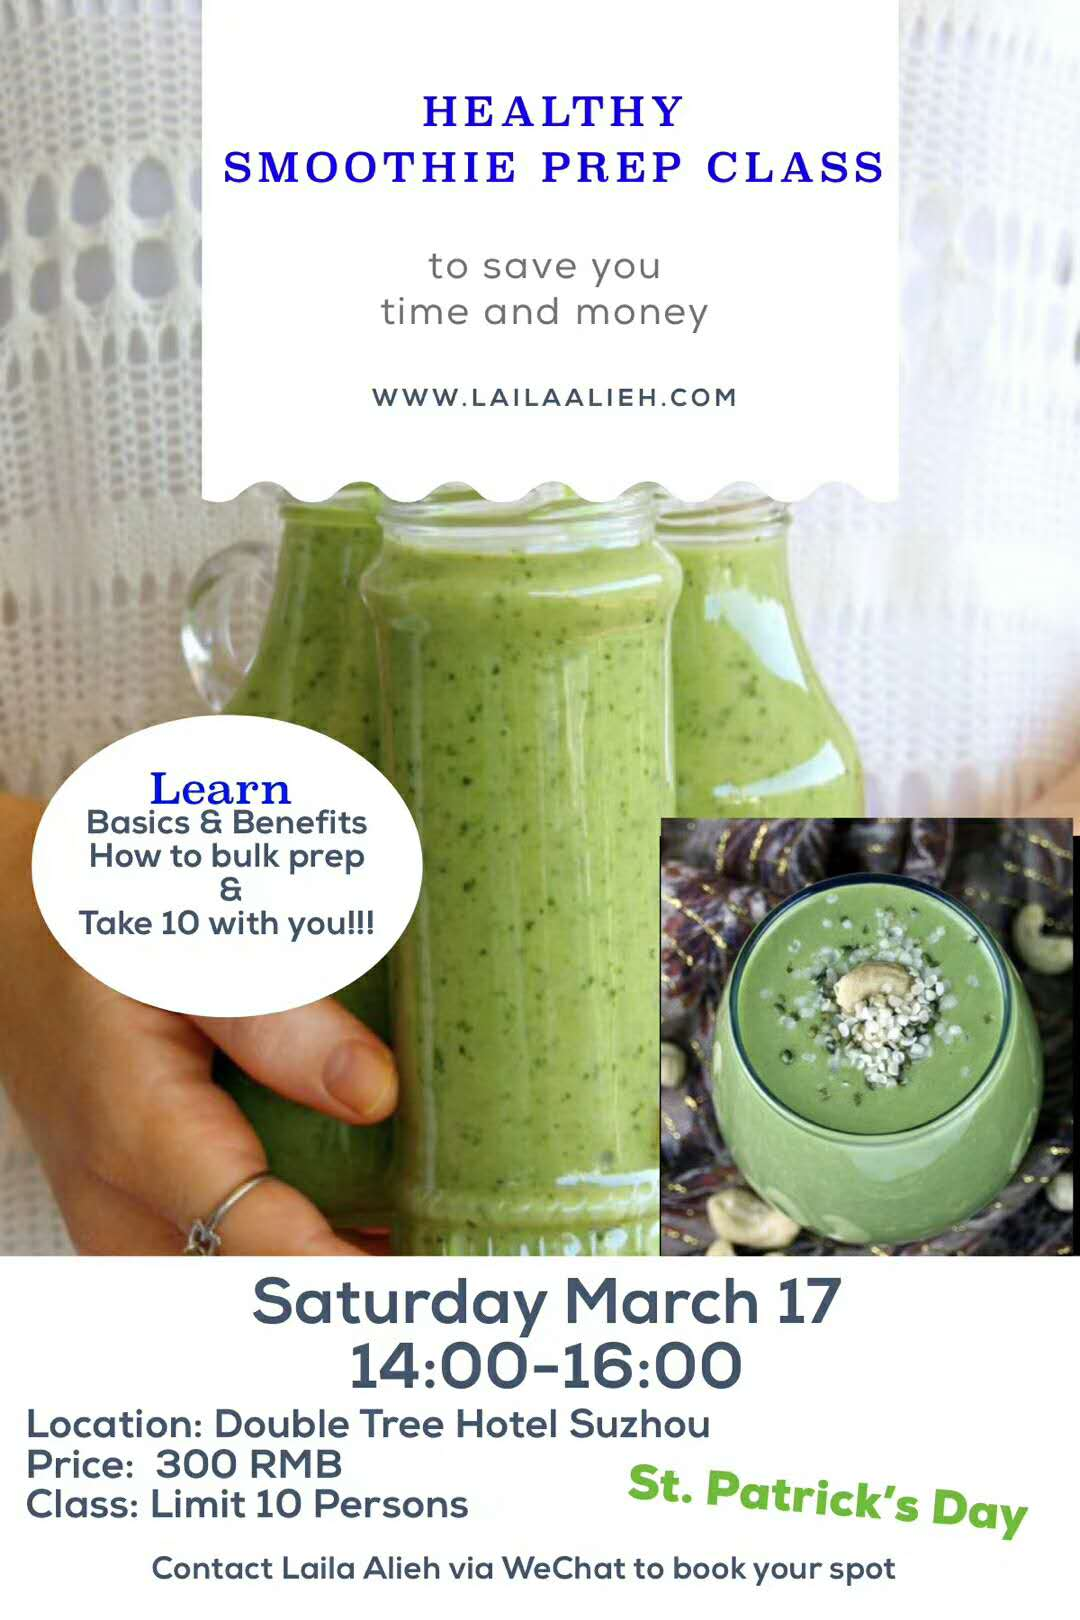 Healthy Smoothie Prep Class